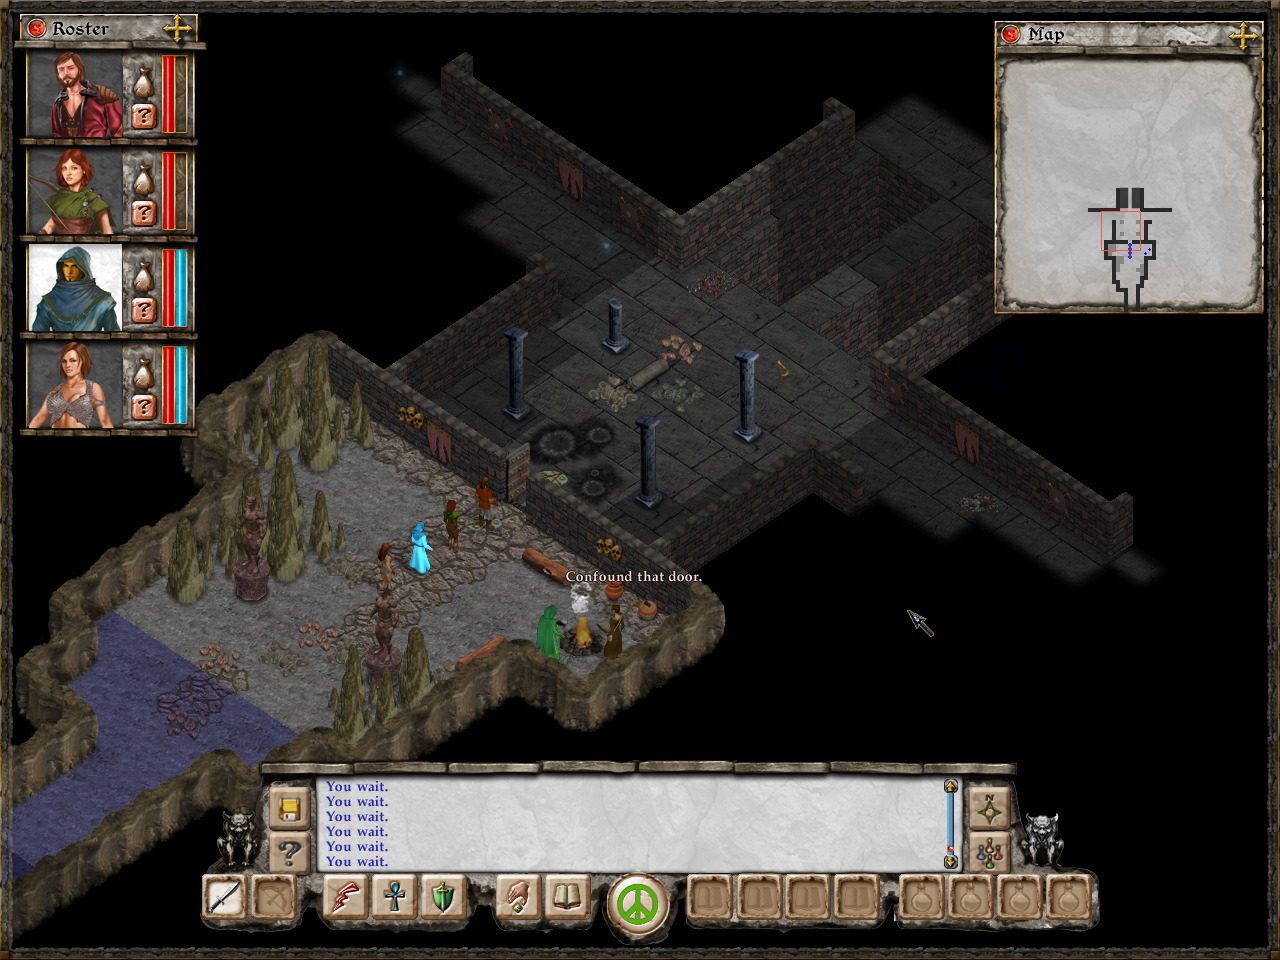 Tablet gamers want deep RPG experiences too, says Spiderweb Software